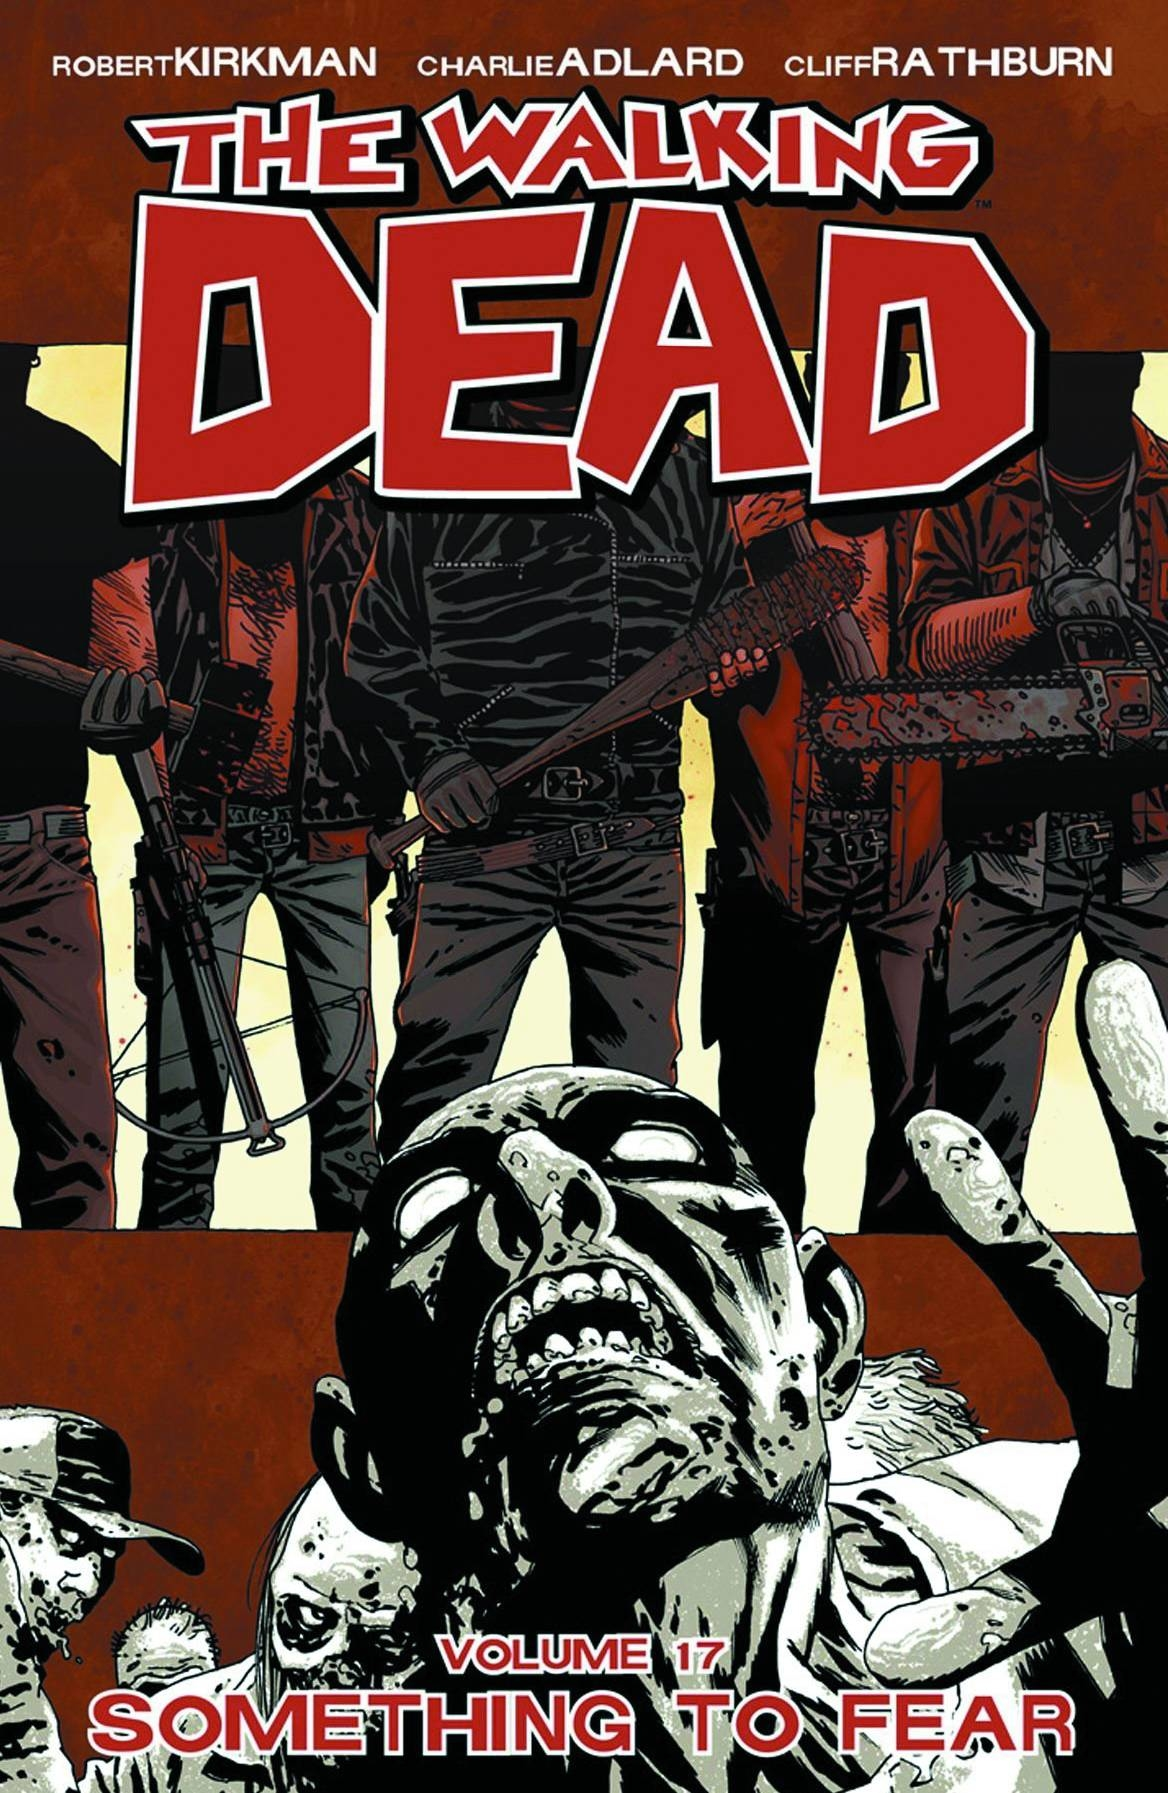 WALKING DEAD TP VOL 17 SOMETHING TO FEAR (SEP120449) (MR)